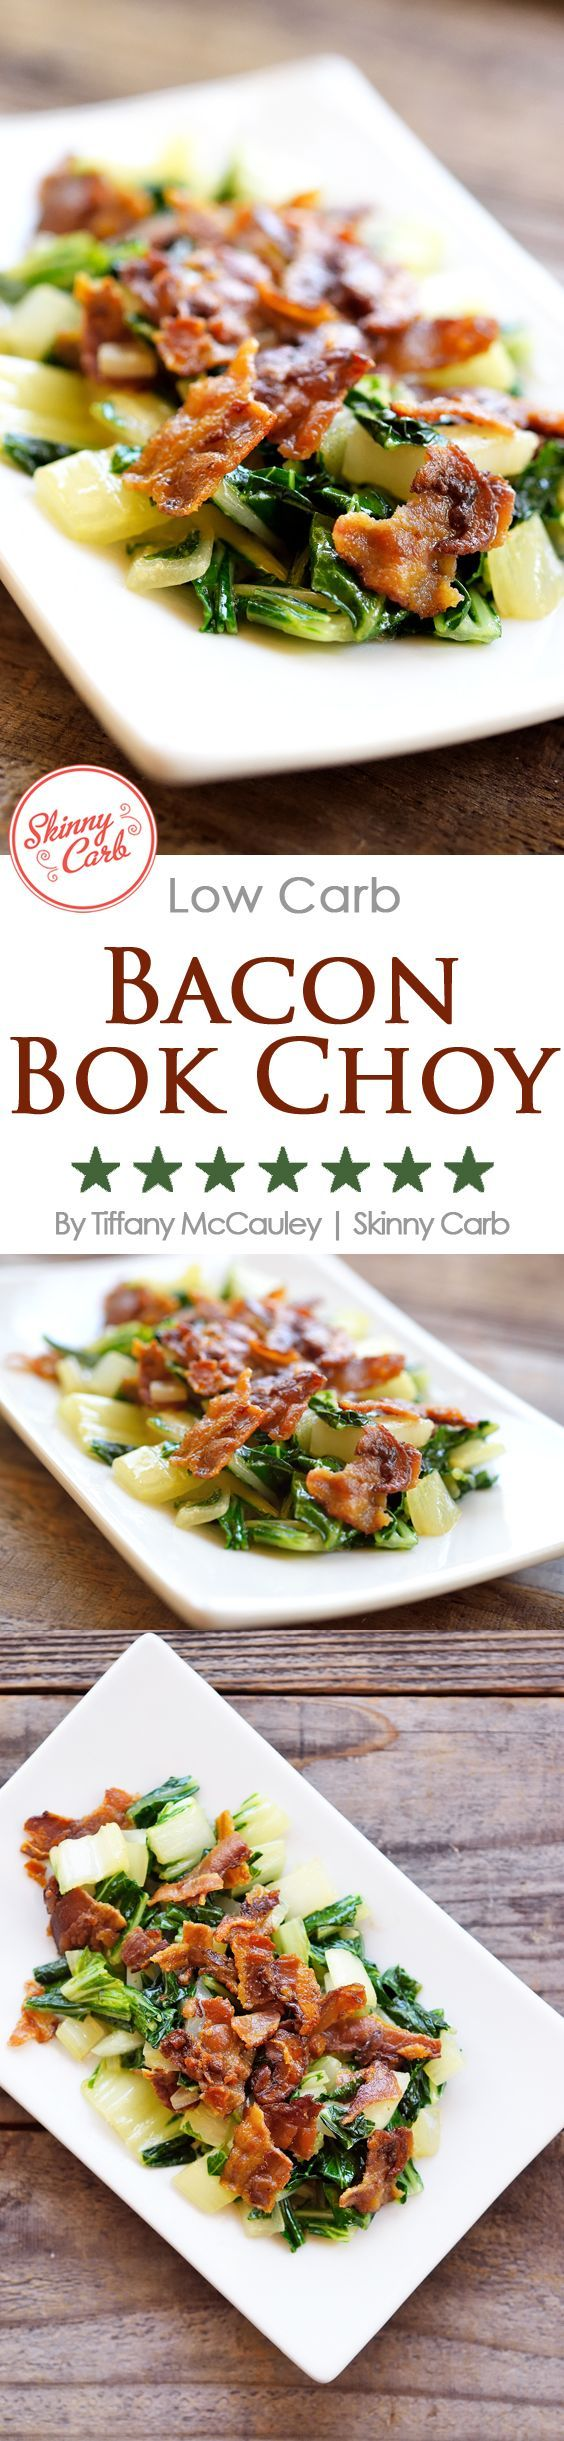 Learn all about bok choy! How to buy it, prep it and cook with it for a low carb eating plan. This delicious dish is perfect for a quick breakfast or as a flavorful side dish. ~ www.skinnycarb.com/